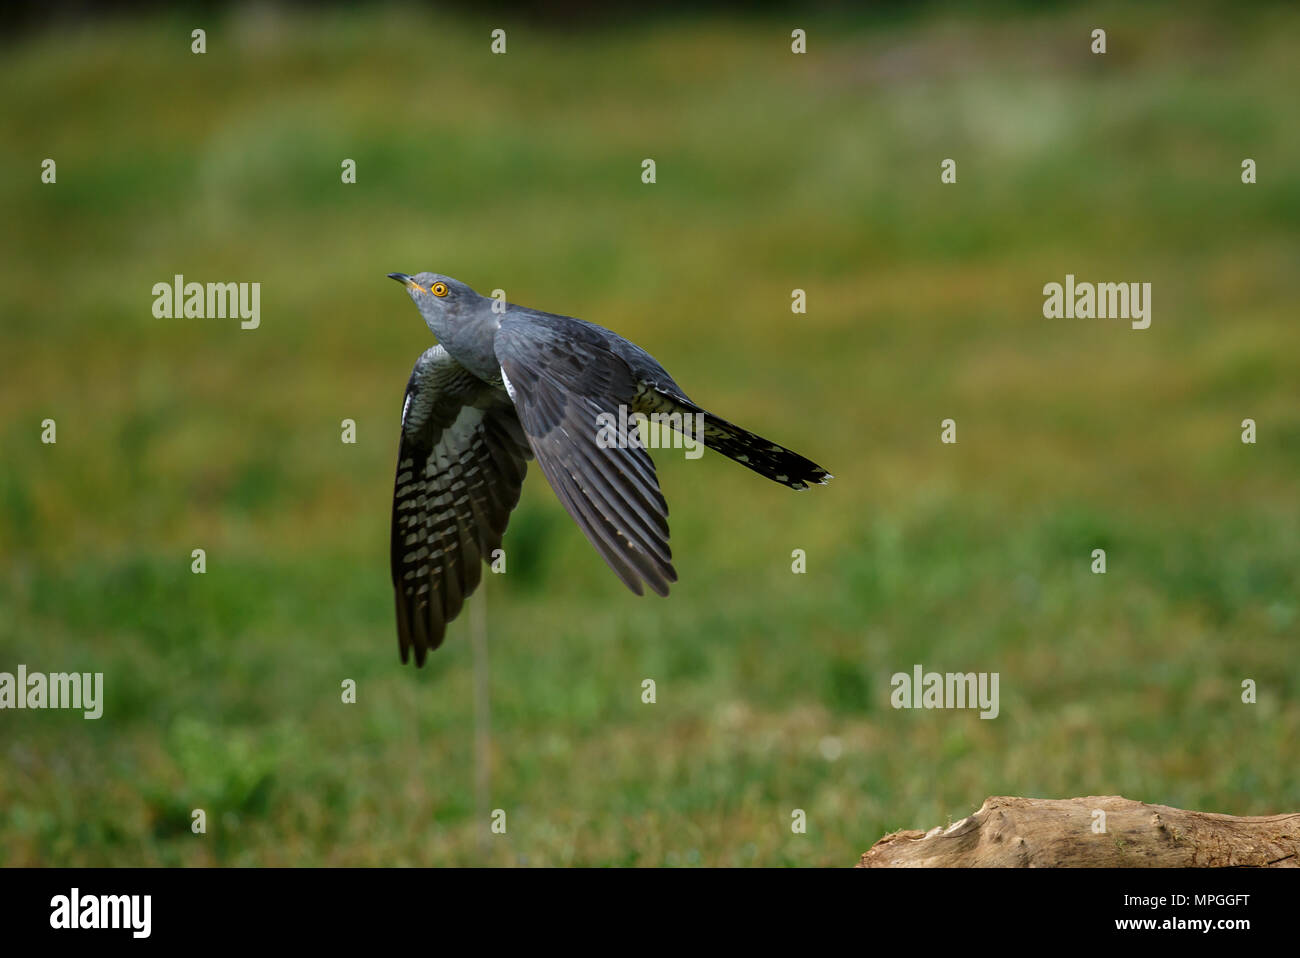 A Common cuckoo in flight - Stock Image